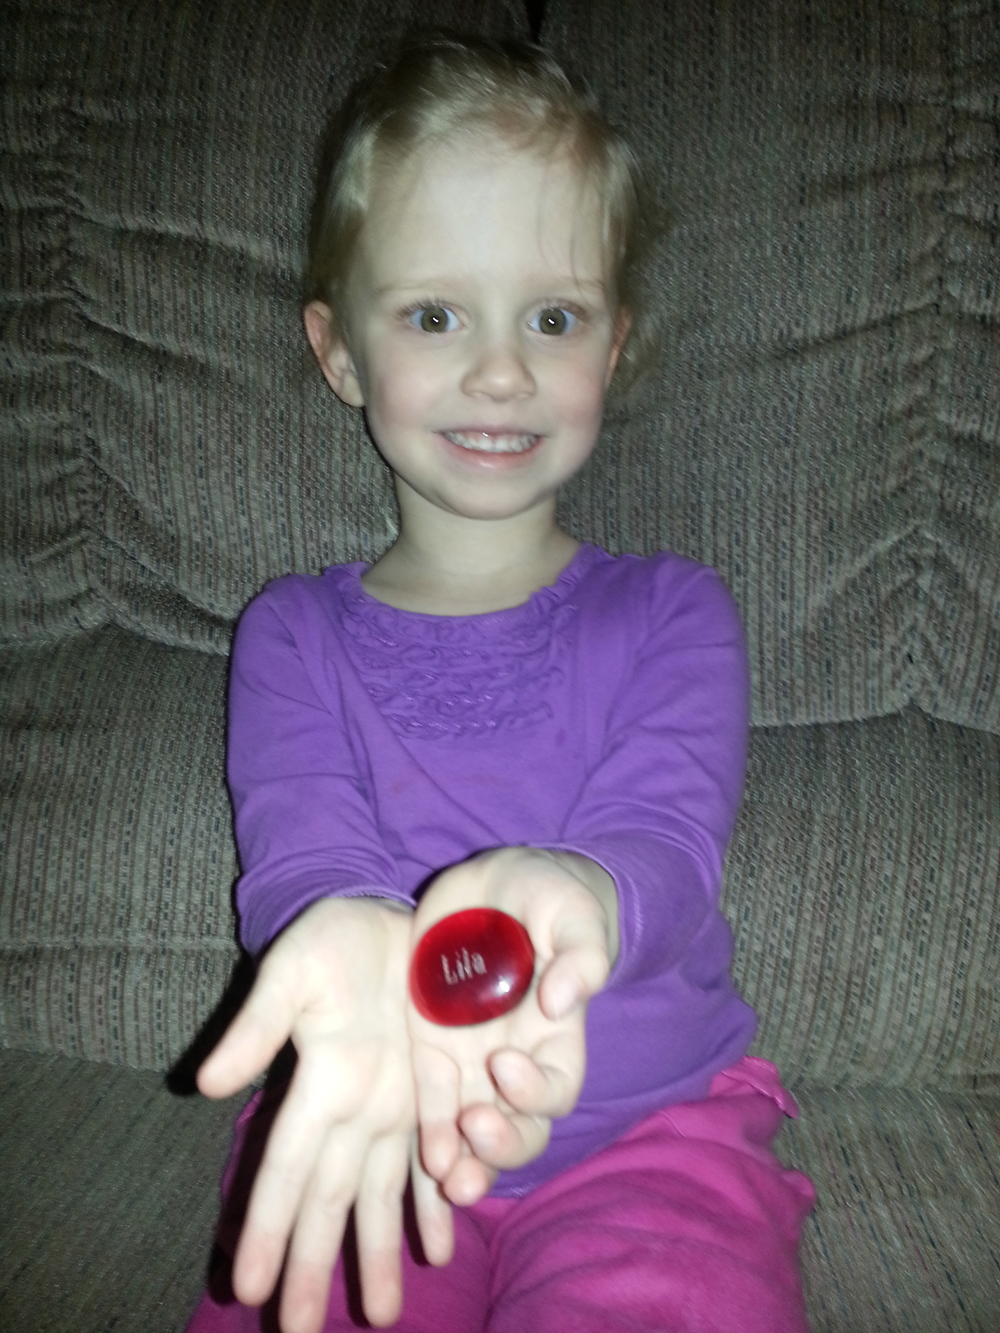 Kira proudly holding her Lila Stone